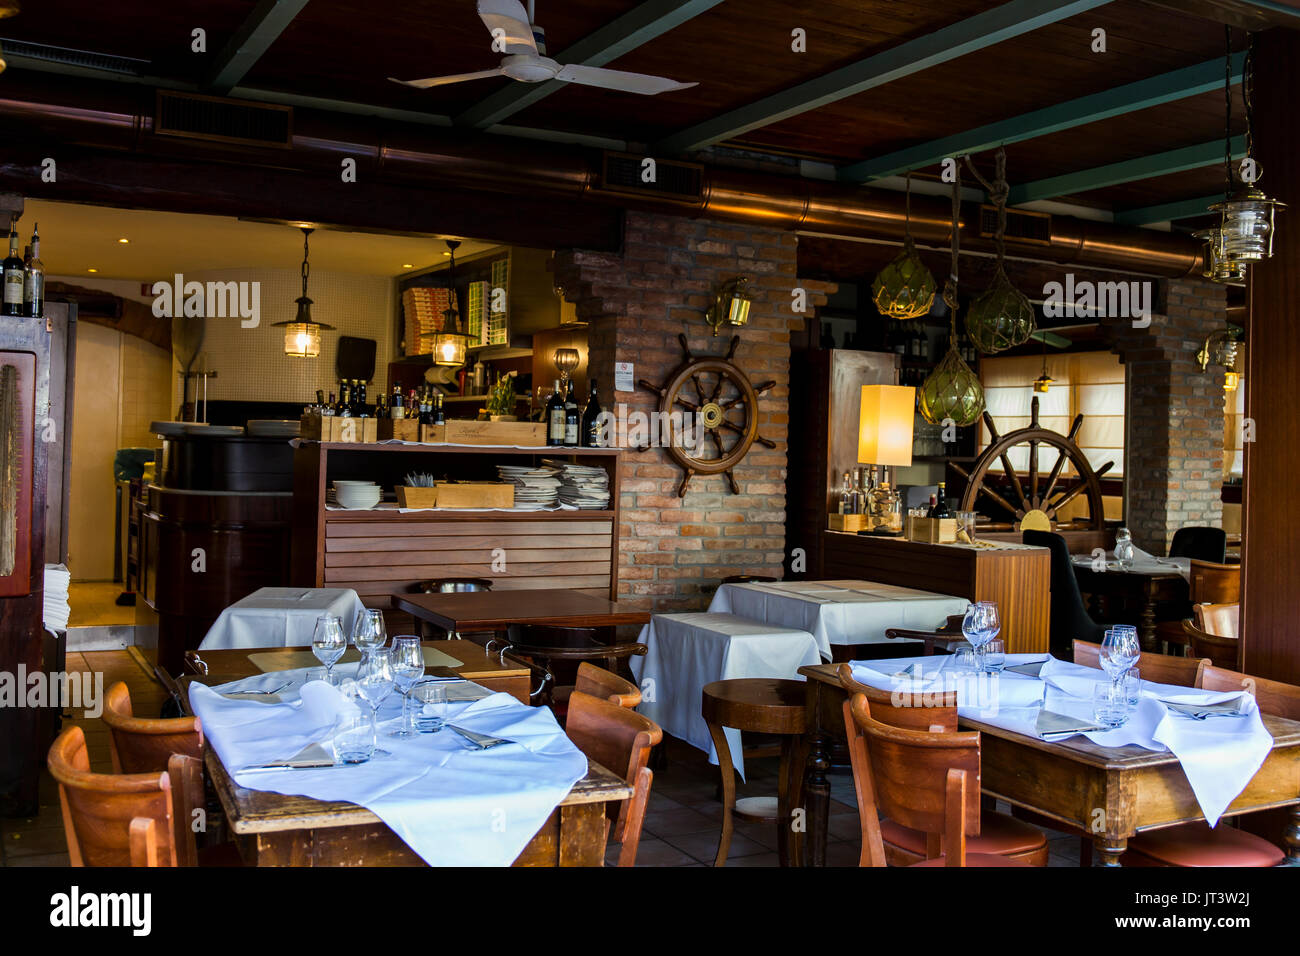 Decoration Restaurant Italien The Marine Restaurant Stock Photos And The Marine Restaurant